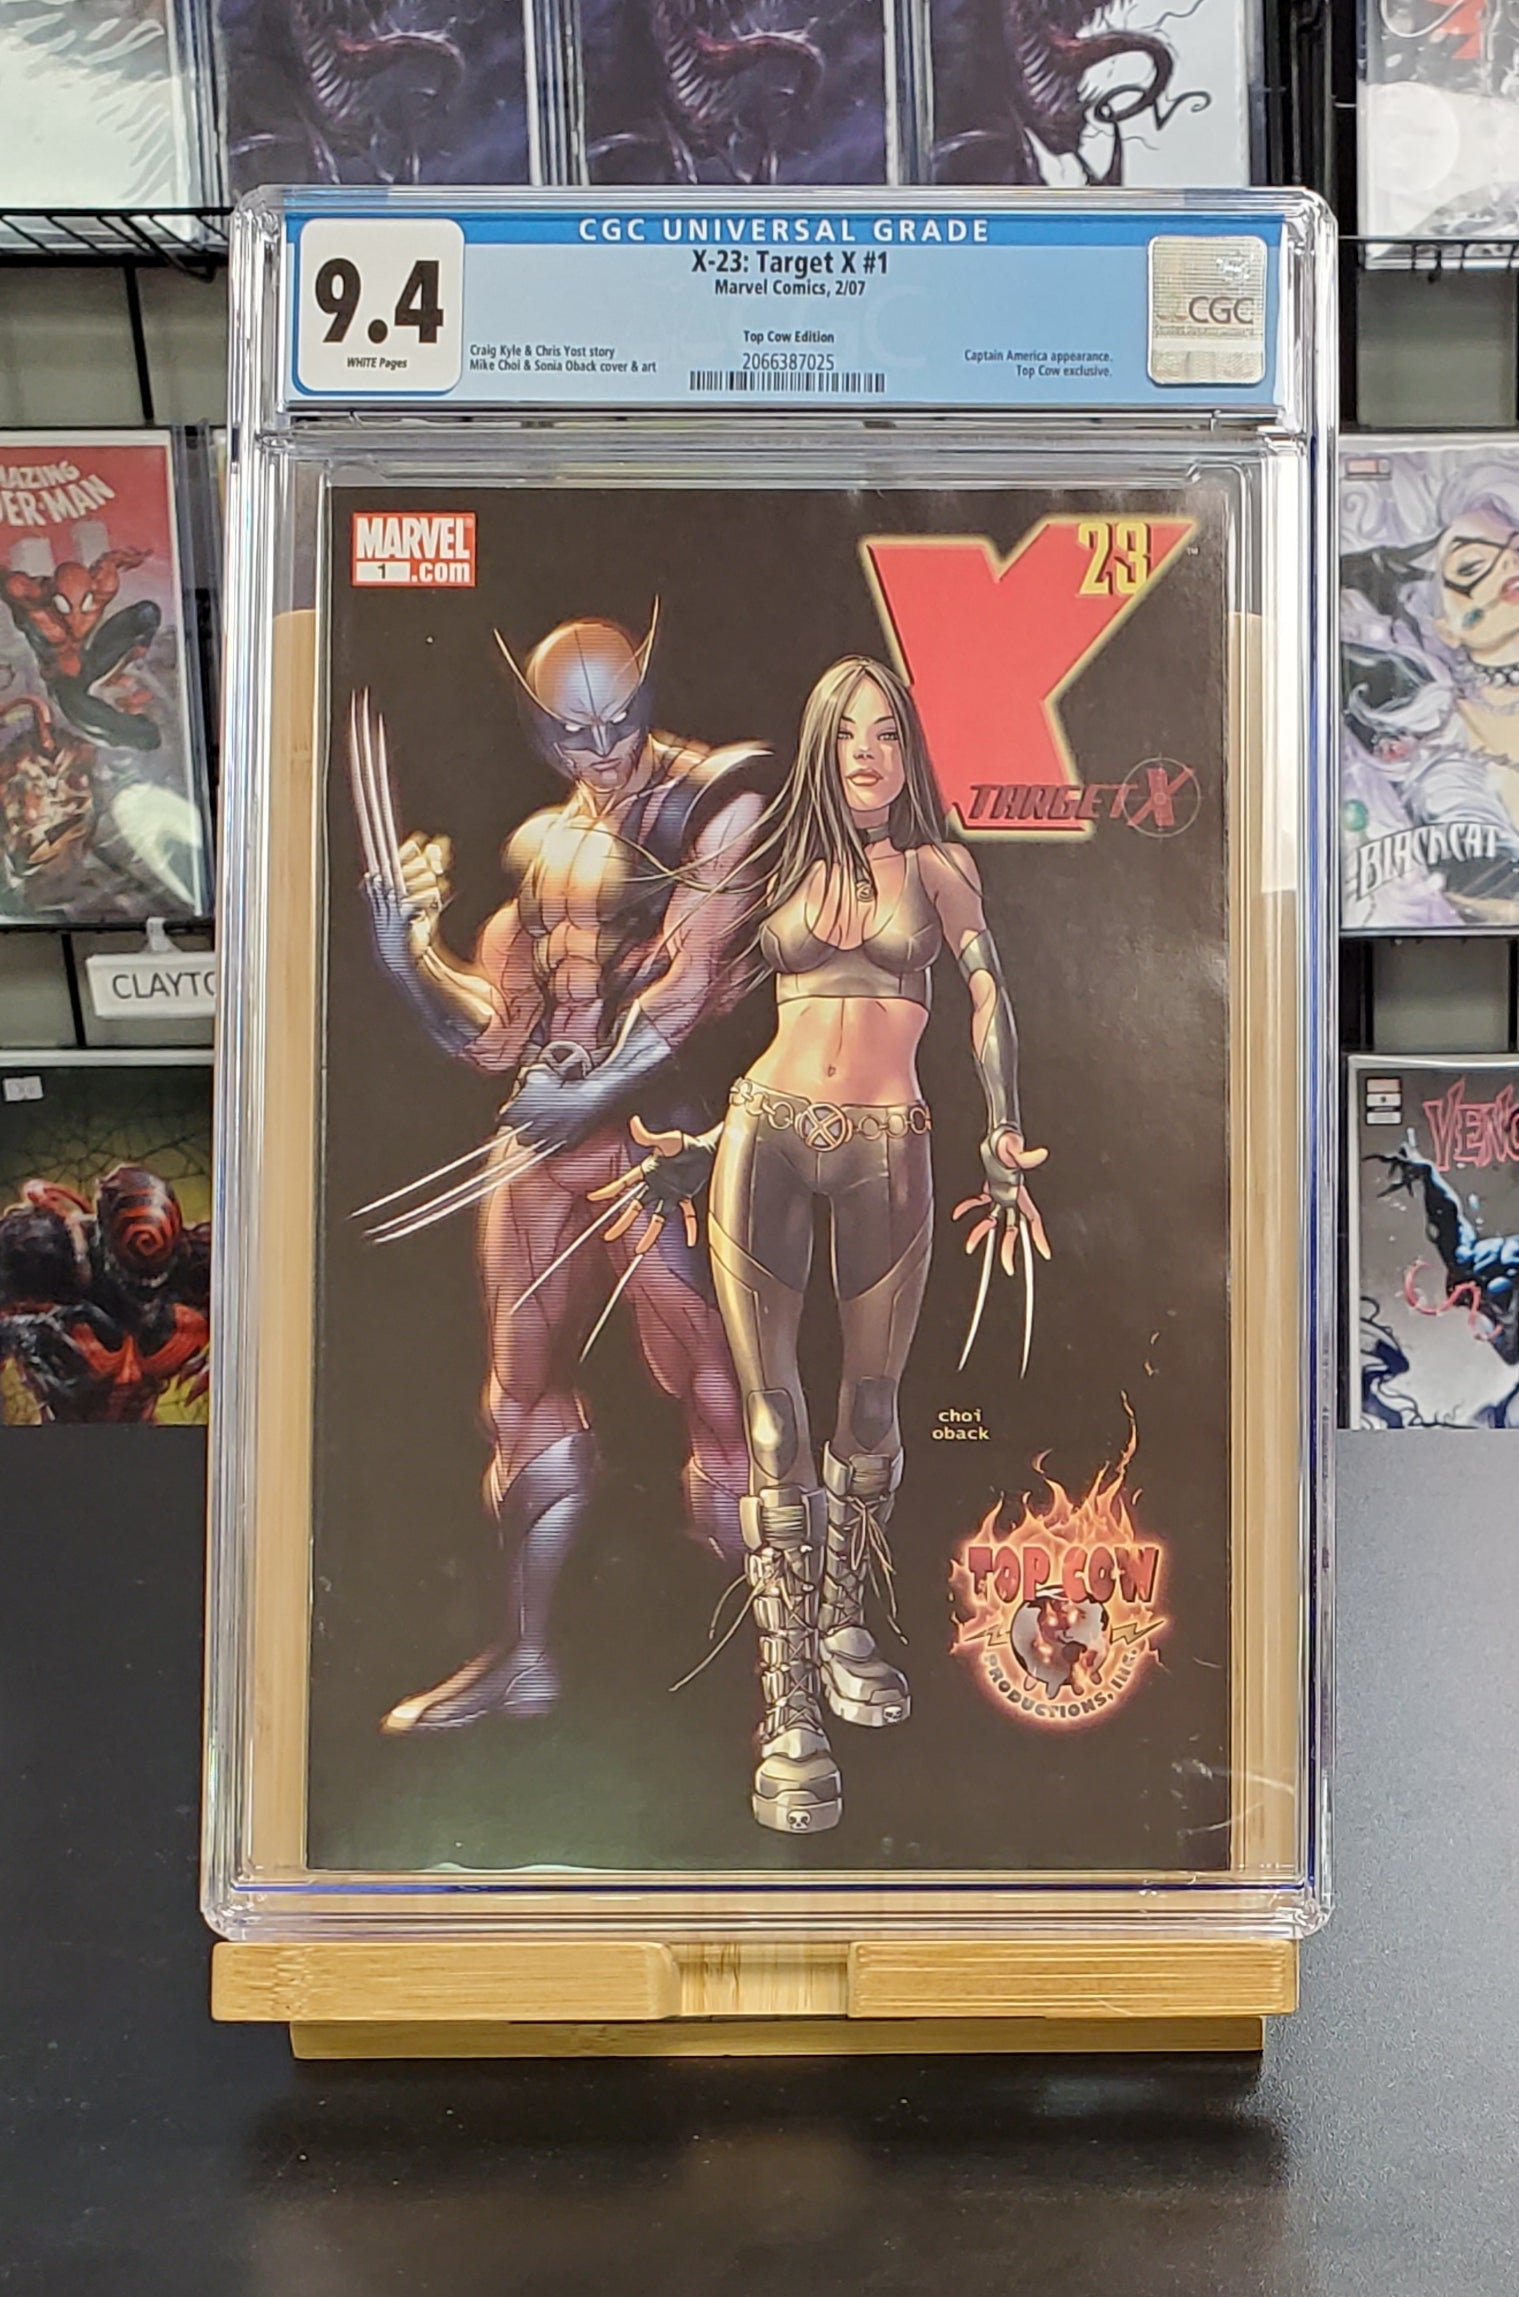 9.4 CGC X-23 Target X #1 Top Cow Variant Mike Choi Marvel Comics 2007